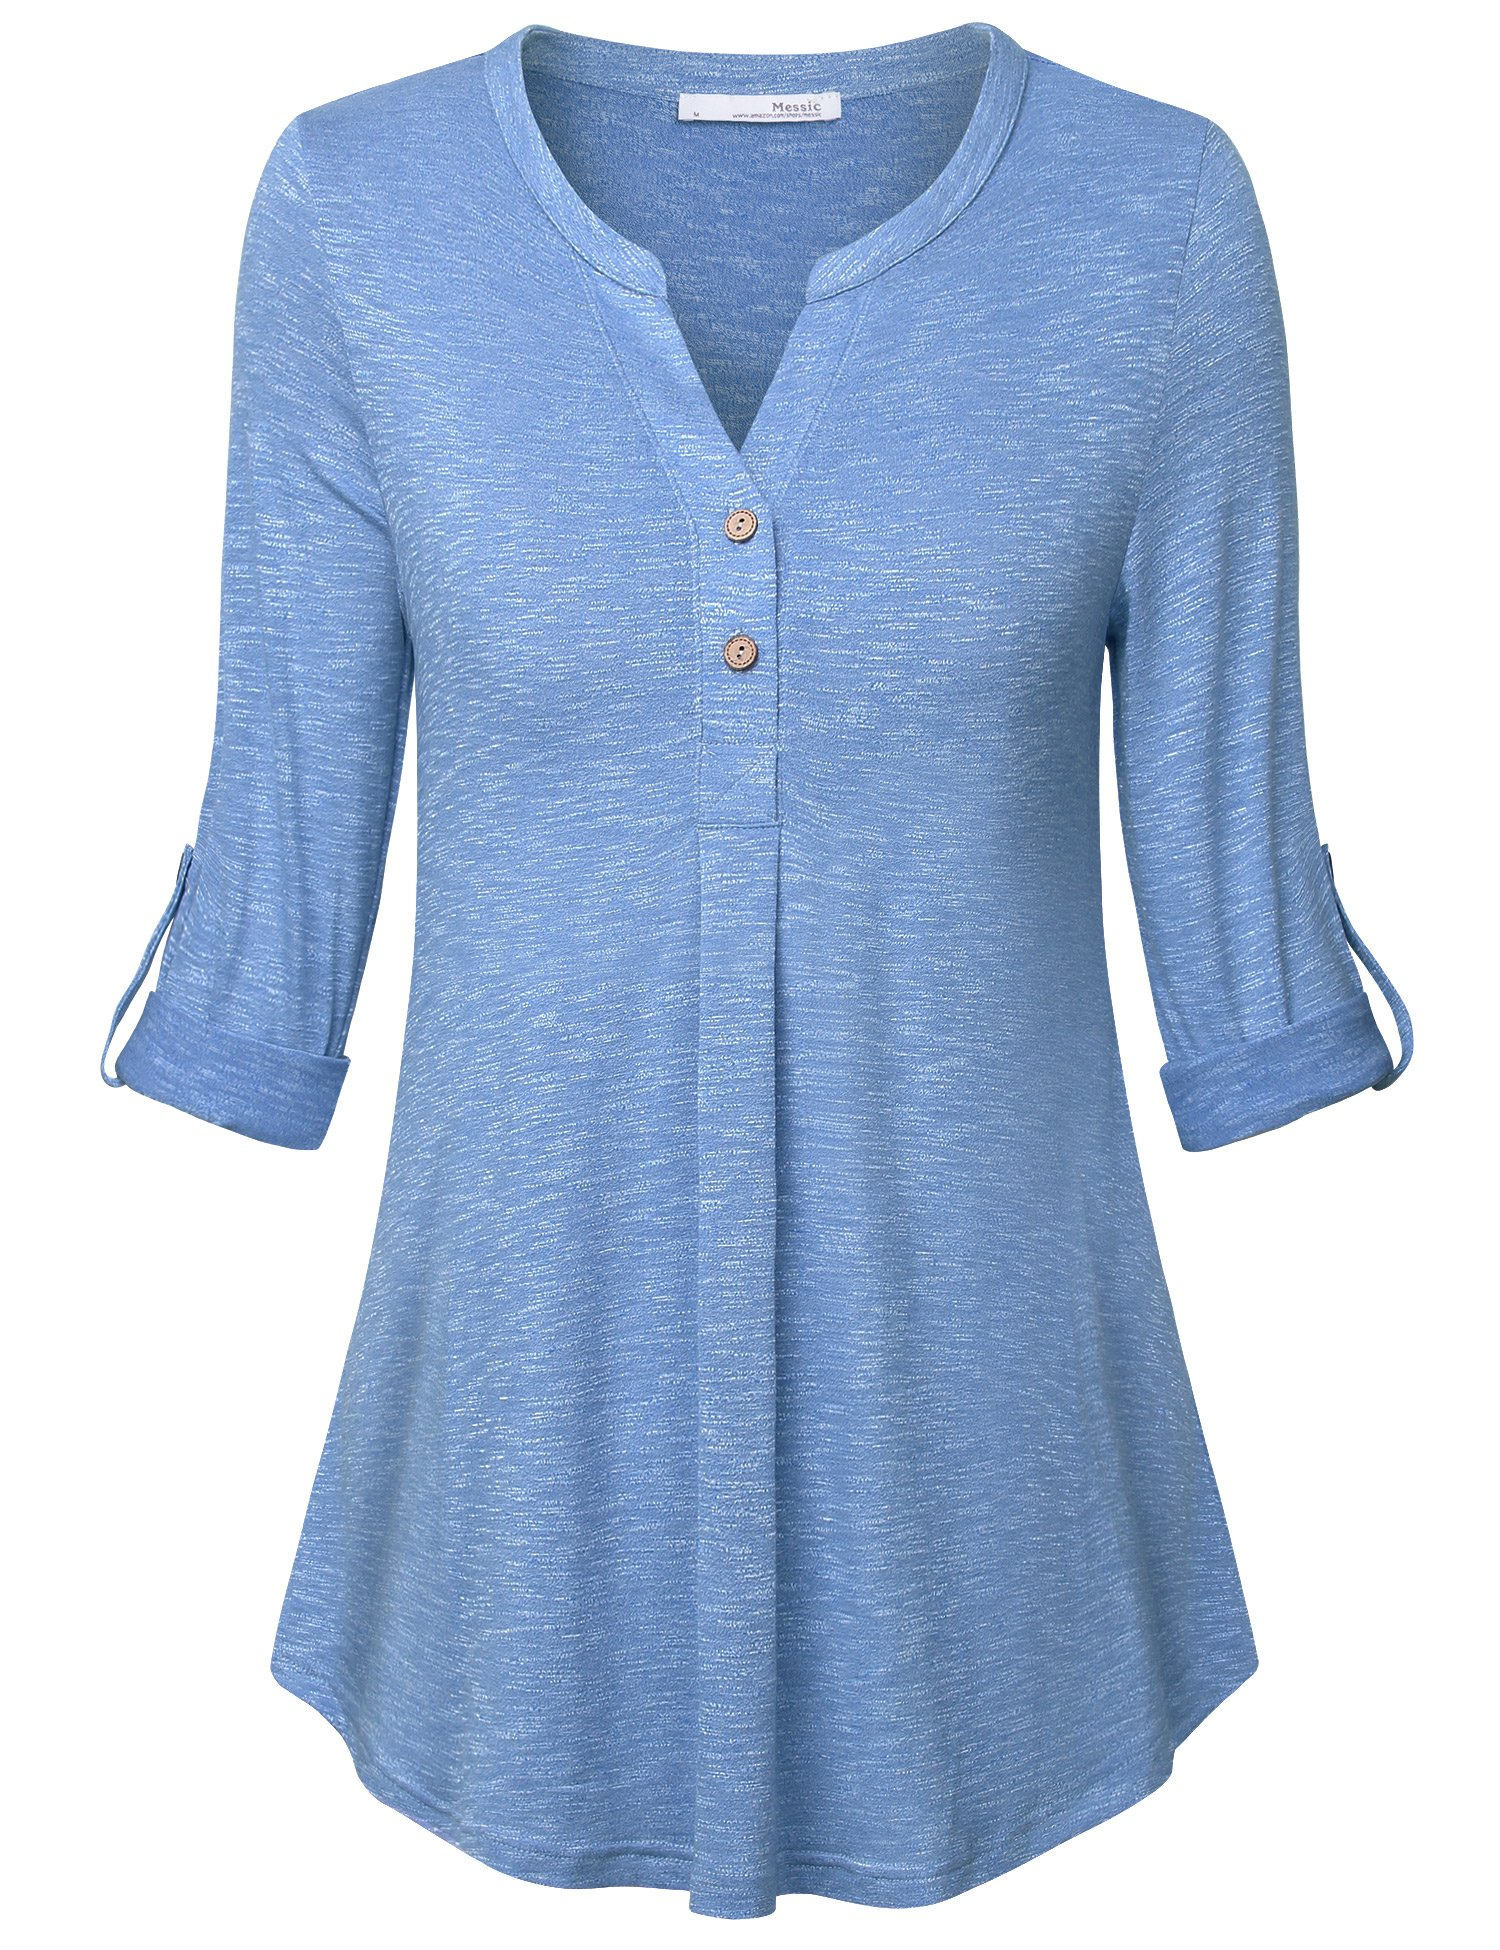 Messic Office Tops for Women,Woman's Notch V Neck Vintage Short Sleeve Flare A Line Loose Pleated Shirt Daily Wear Light Blue,Large